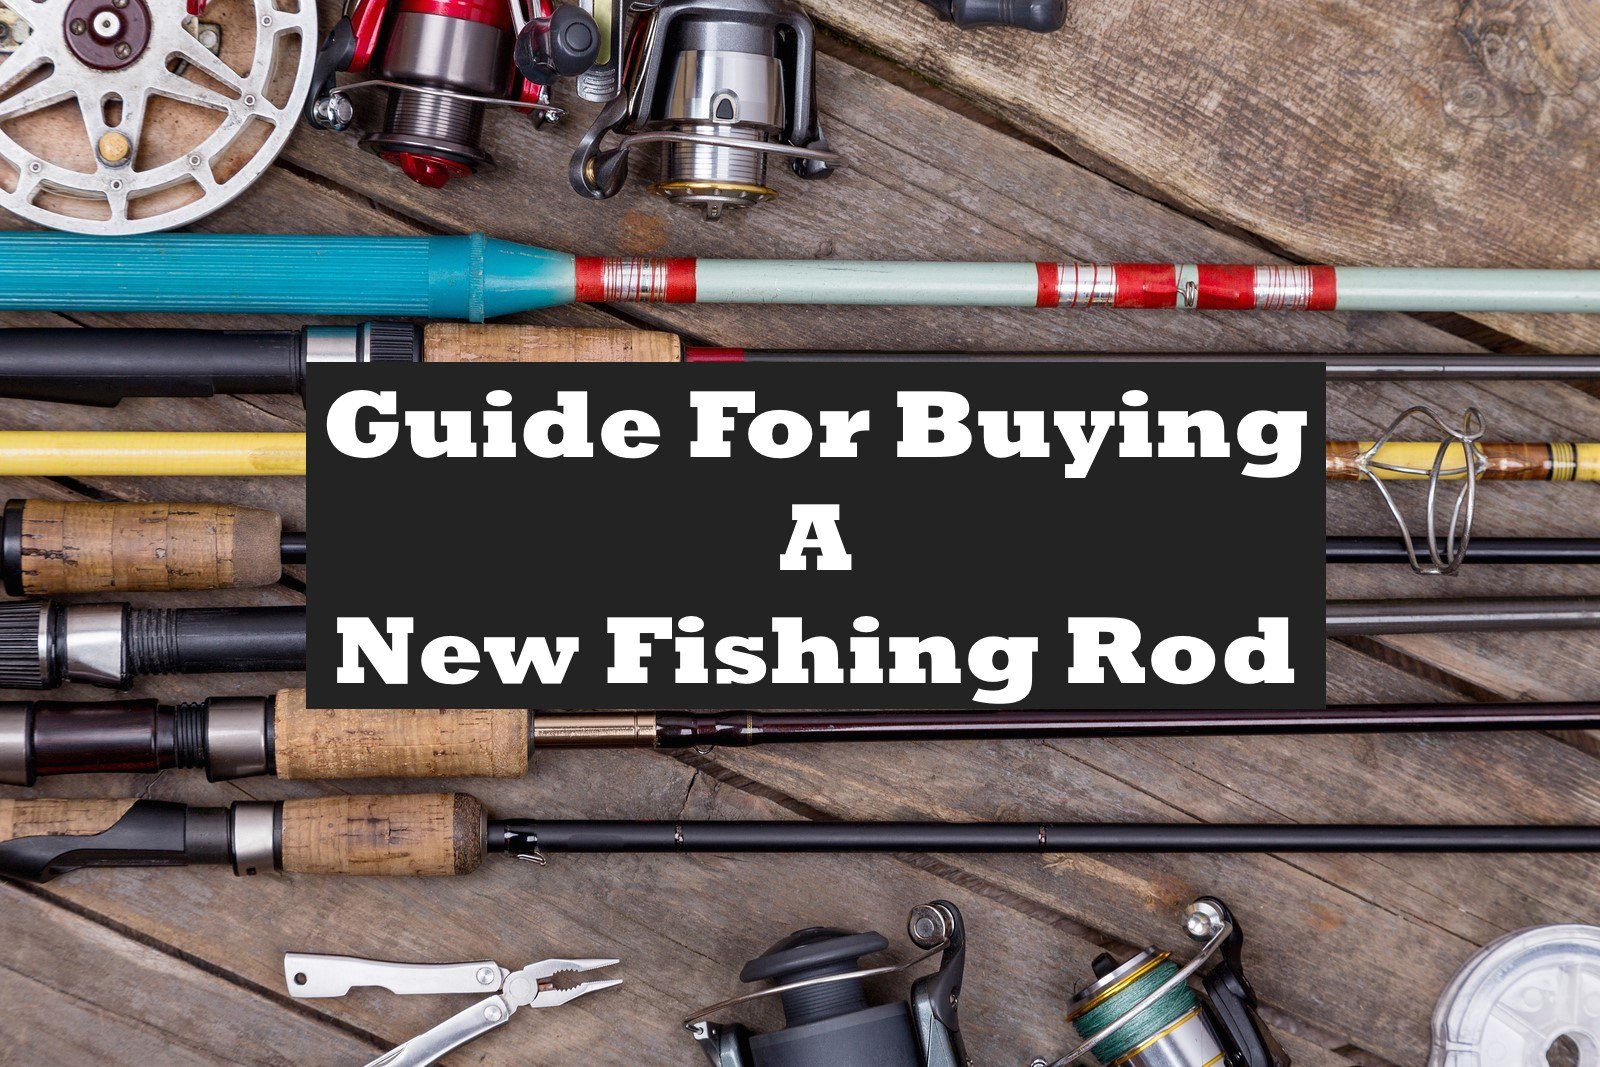 Guide for buying a new fishing rod